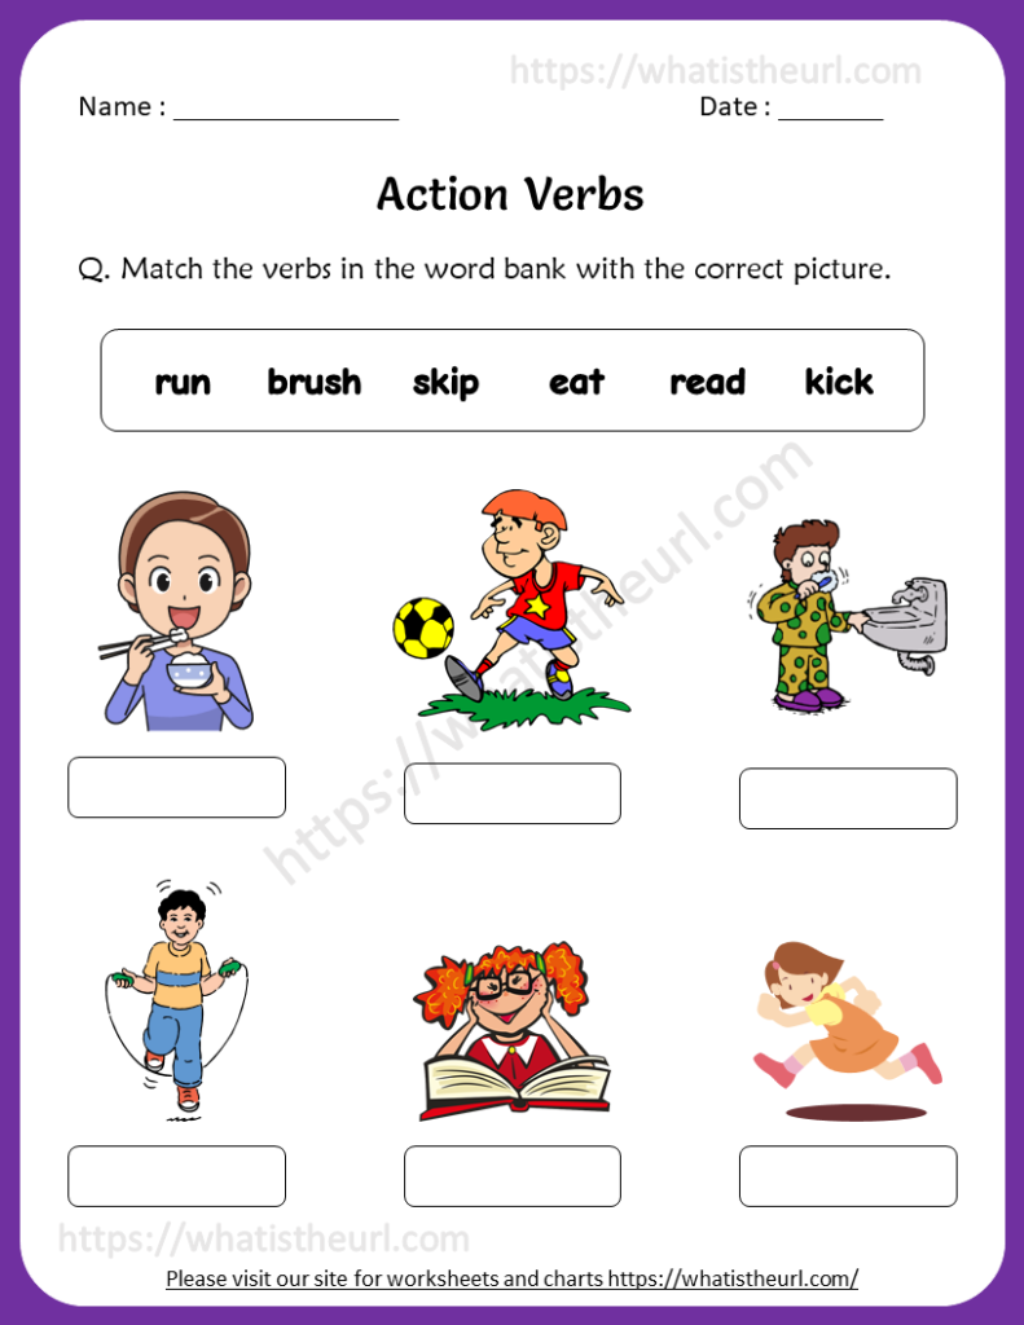 Action Verbs Worksheets For 1st Grade